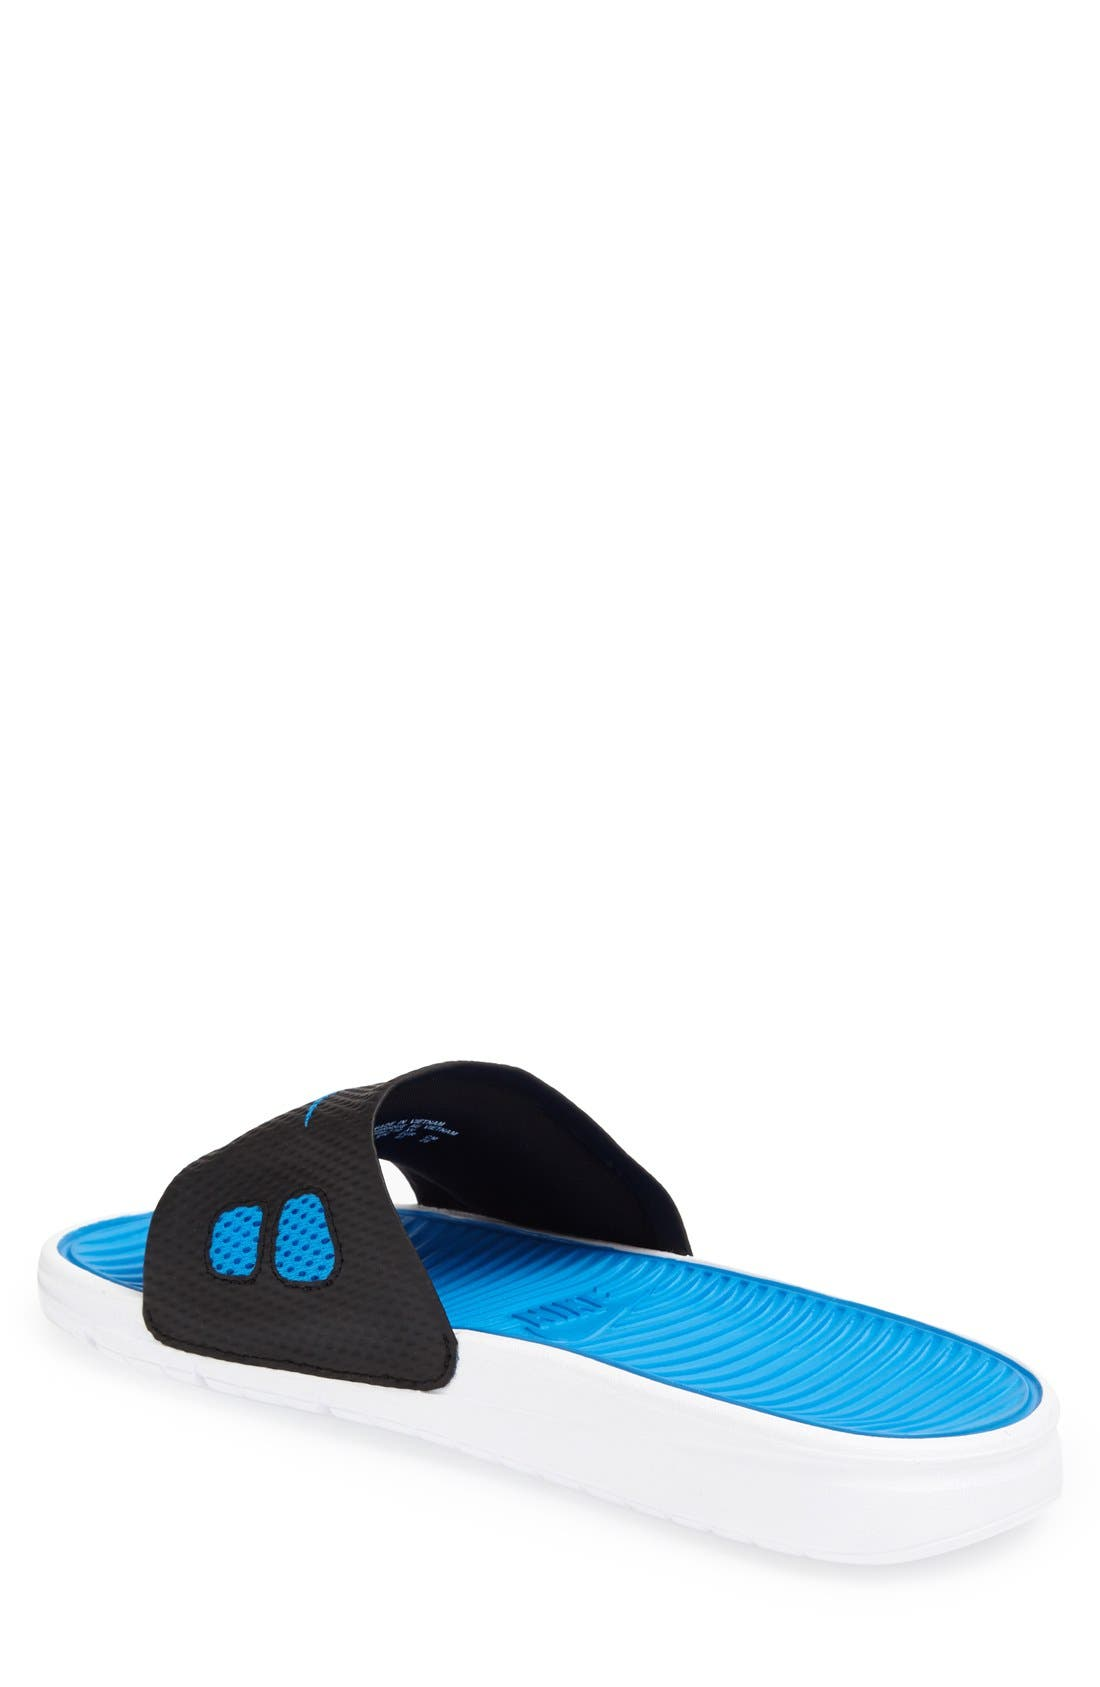 Alternate Image 3  - Nike 'Benassi Solarsoft' Slide